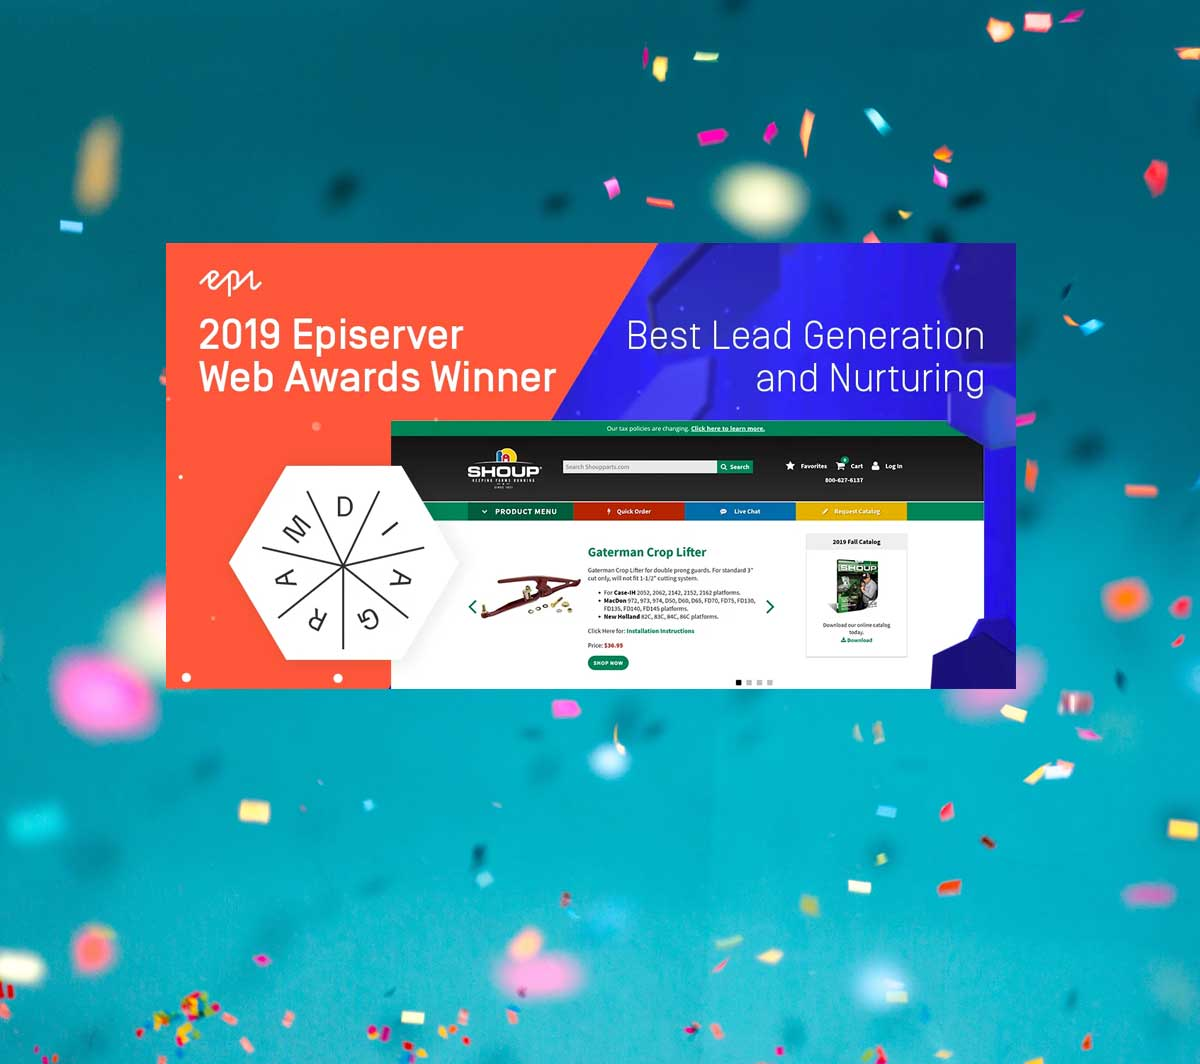 How to Create an Award-Winning, Lead Generating Website Experience